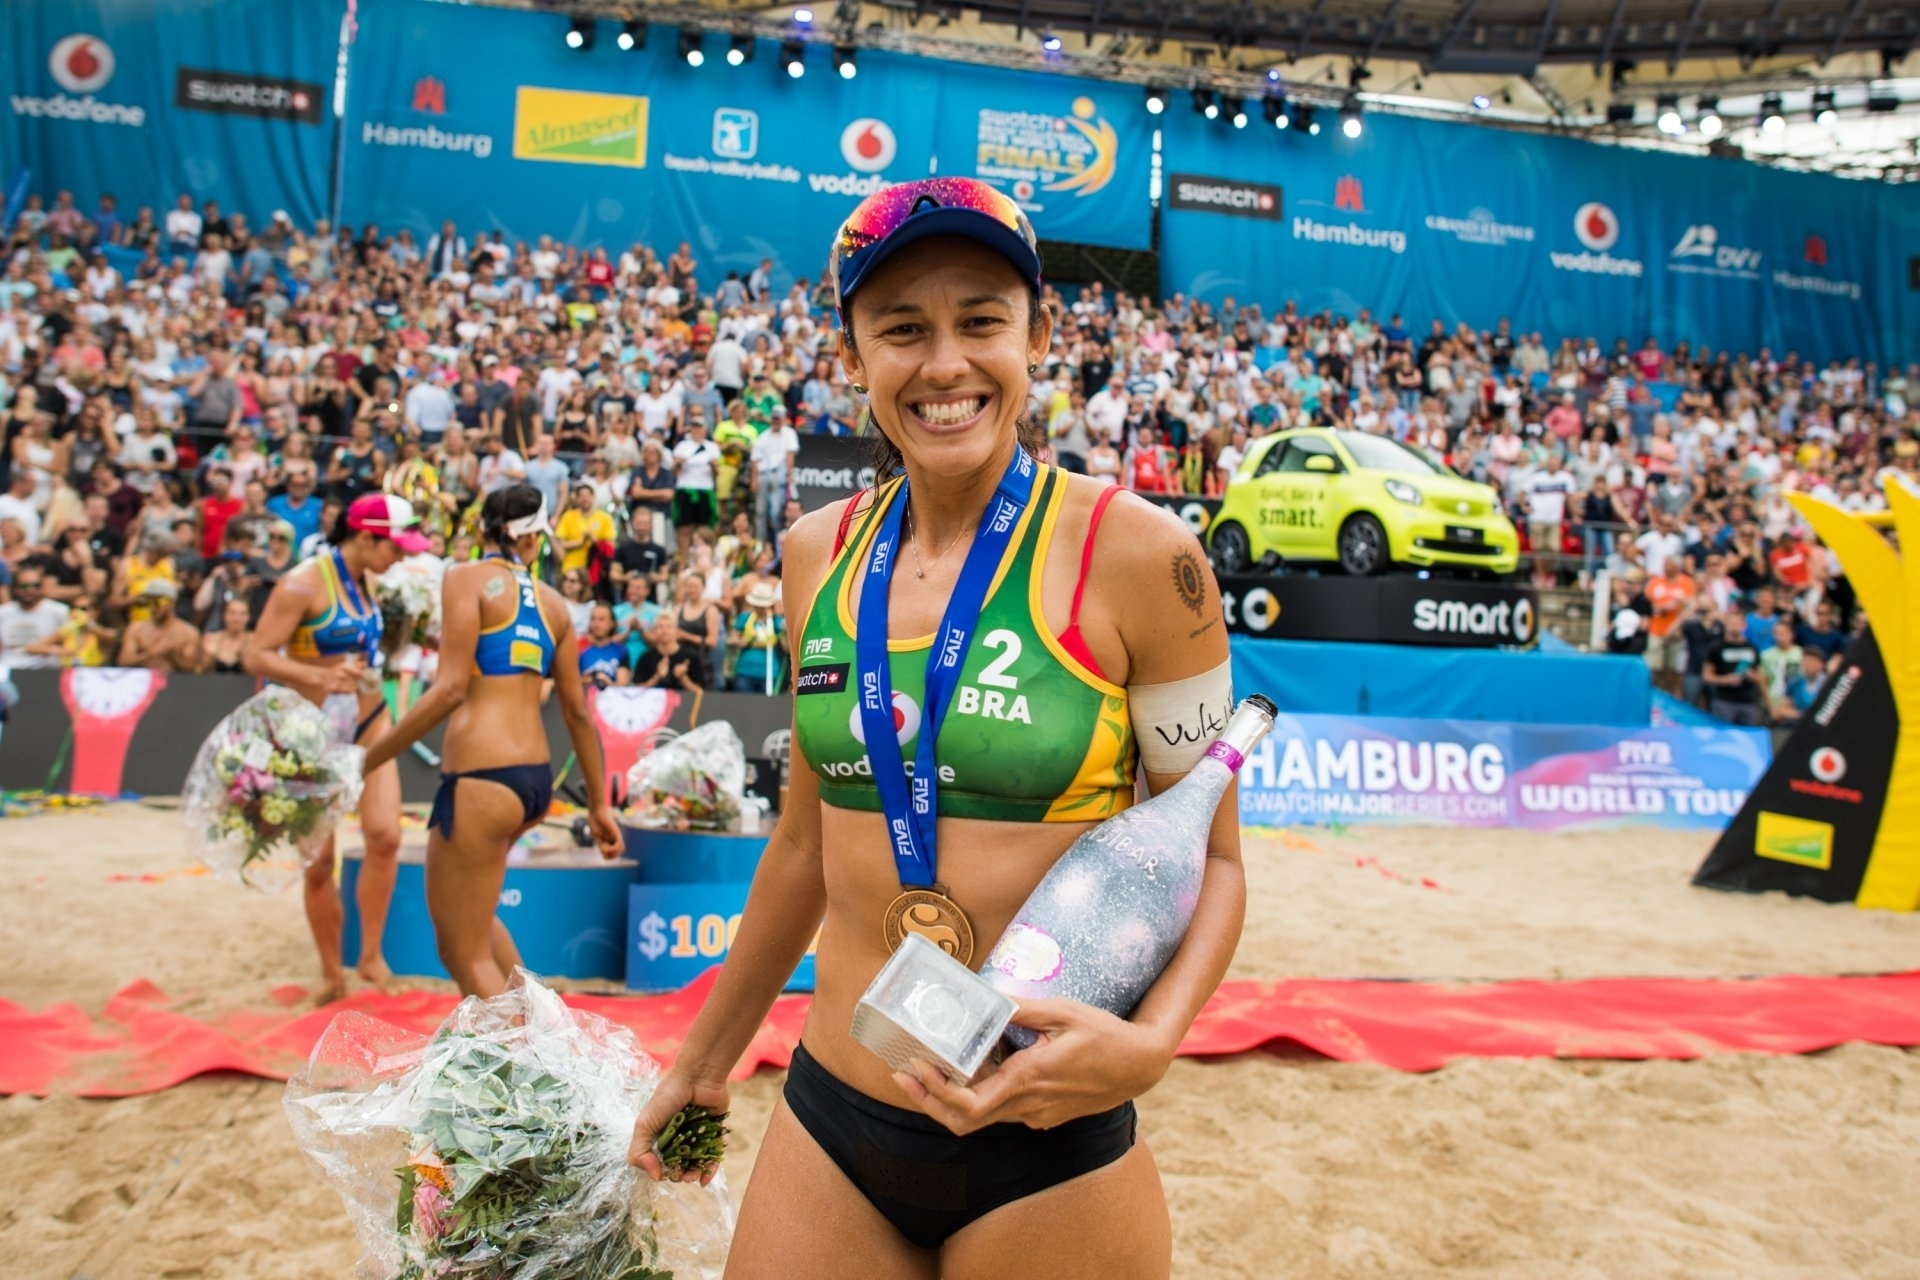 Talita all smiles after winning bronze at the World Tour Finals last year in Hamburg